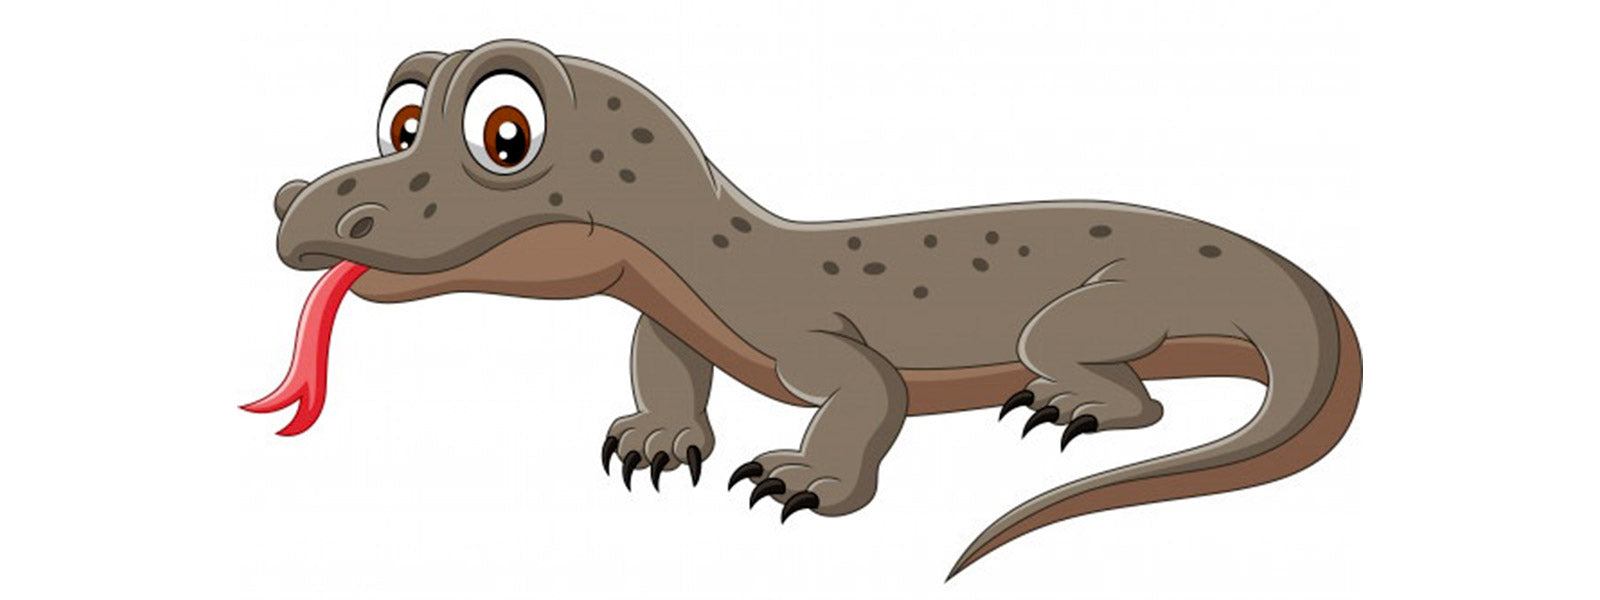 Komodo dragon drawing